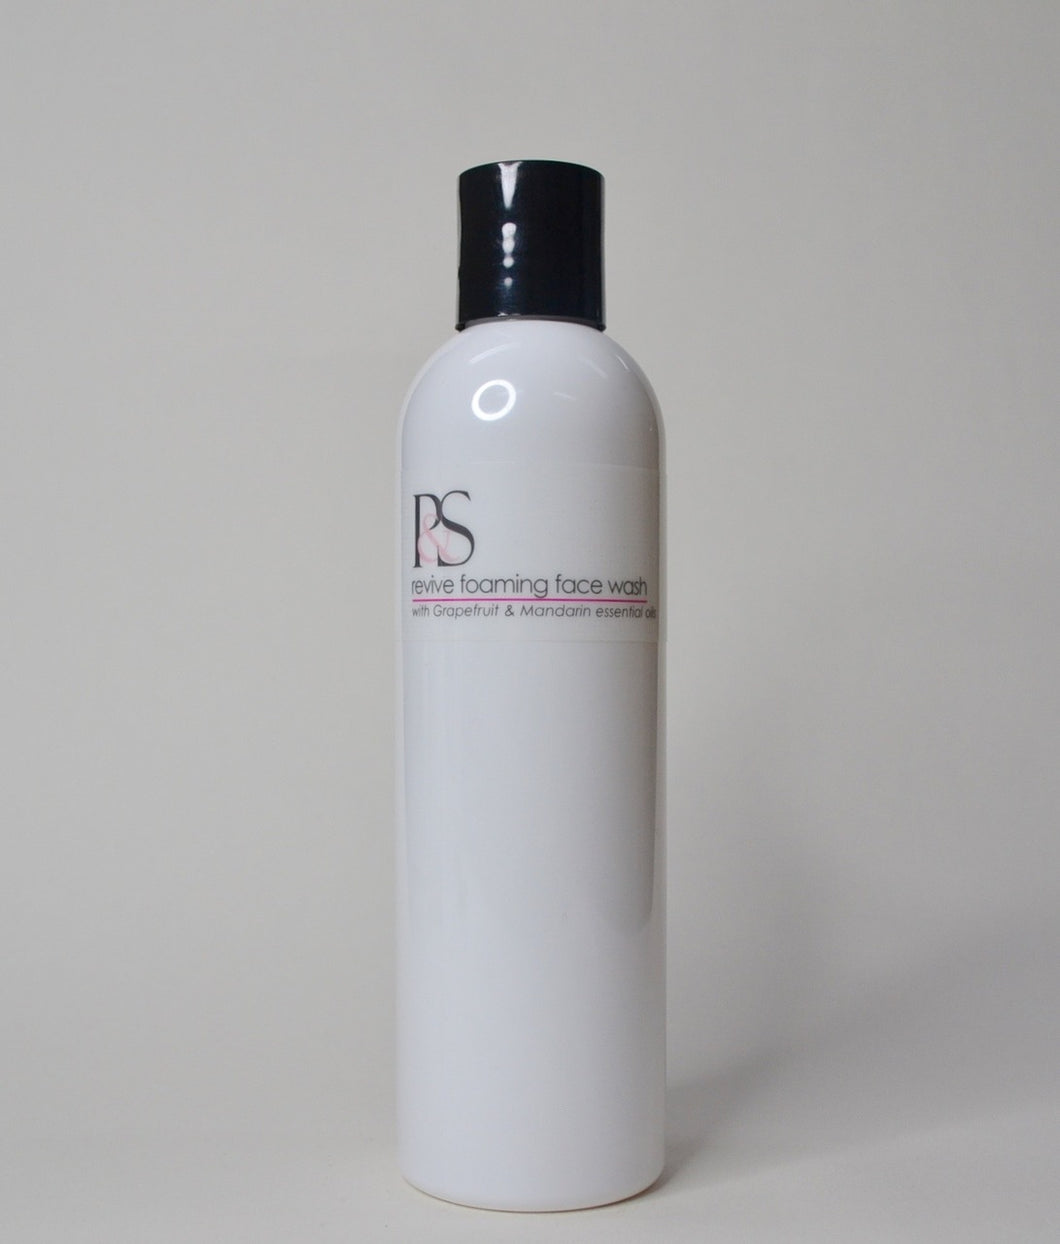 Revive Foaming Face Wash Large